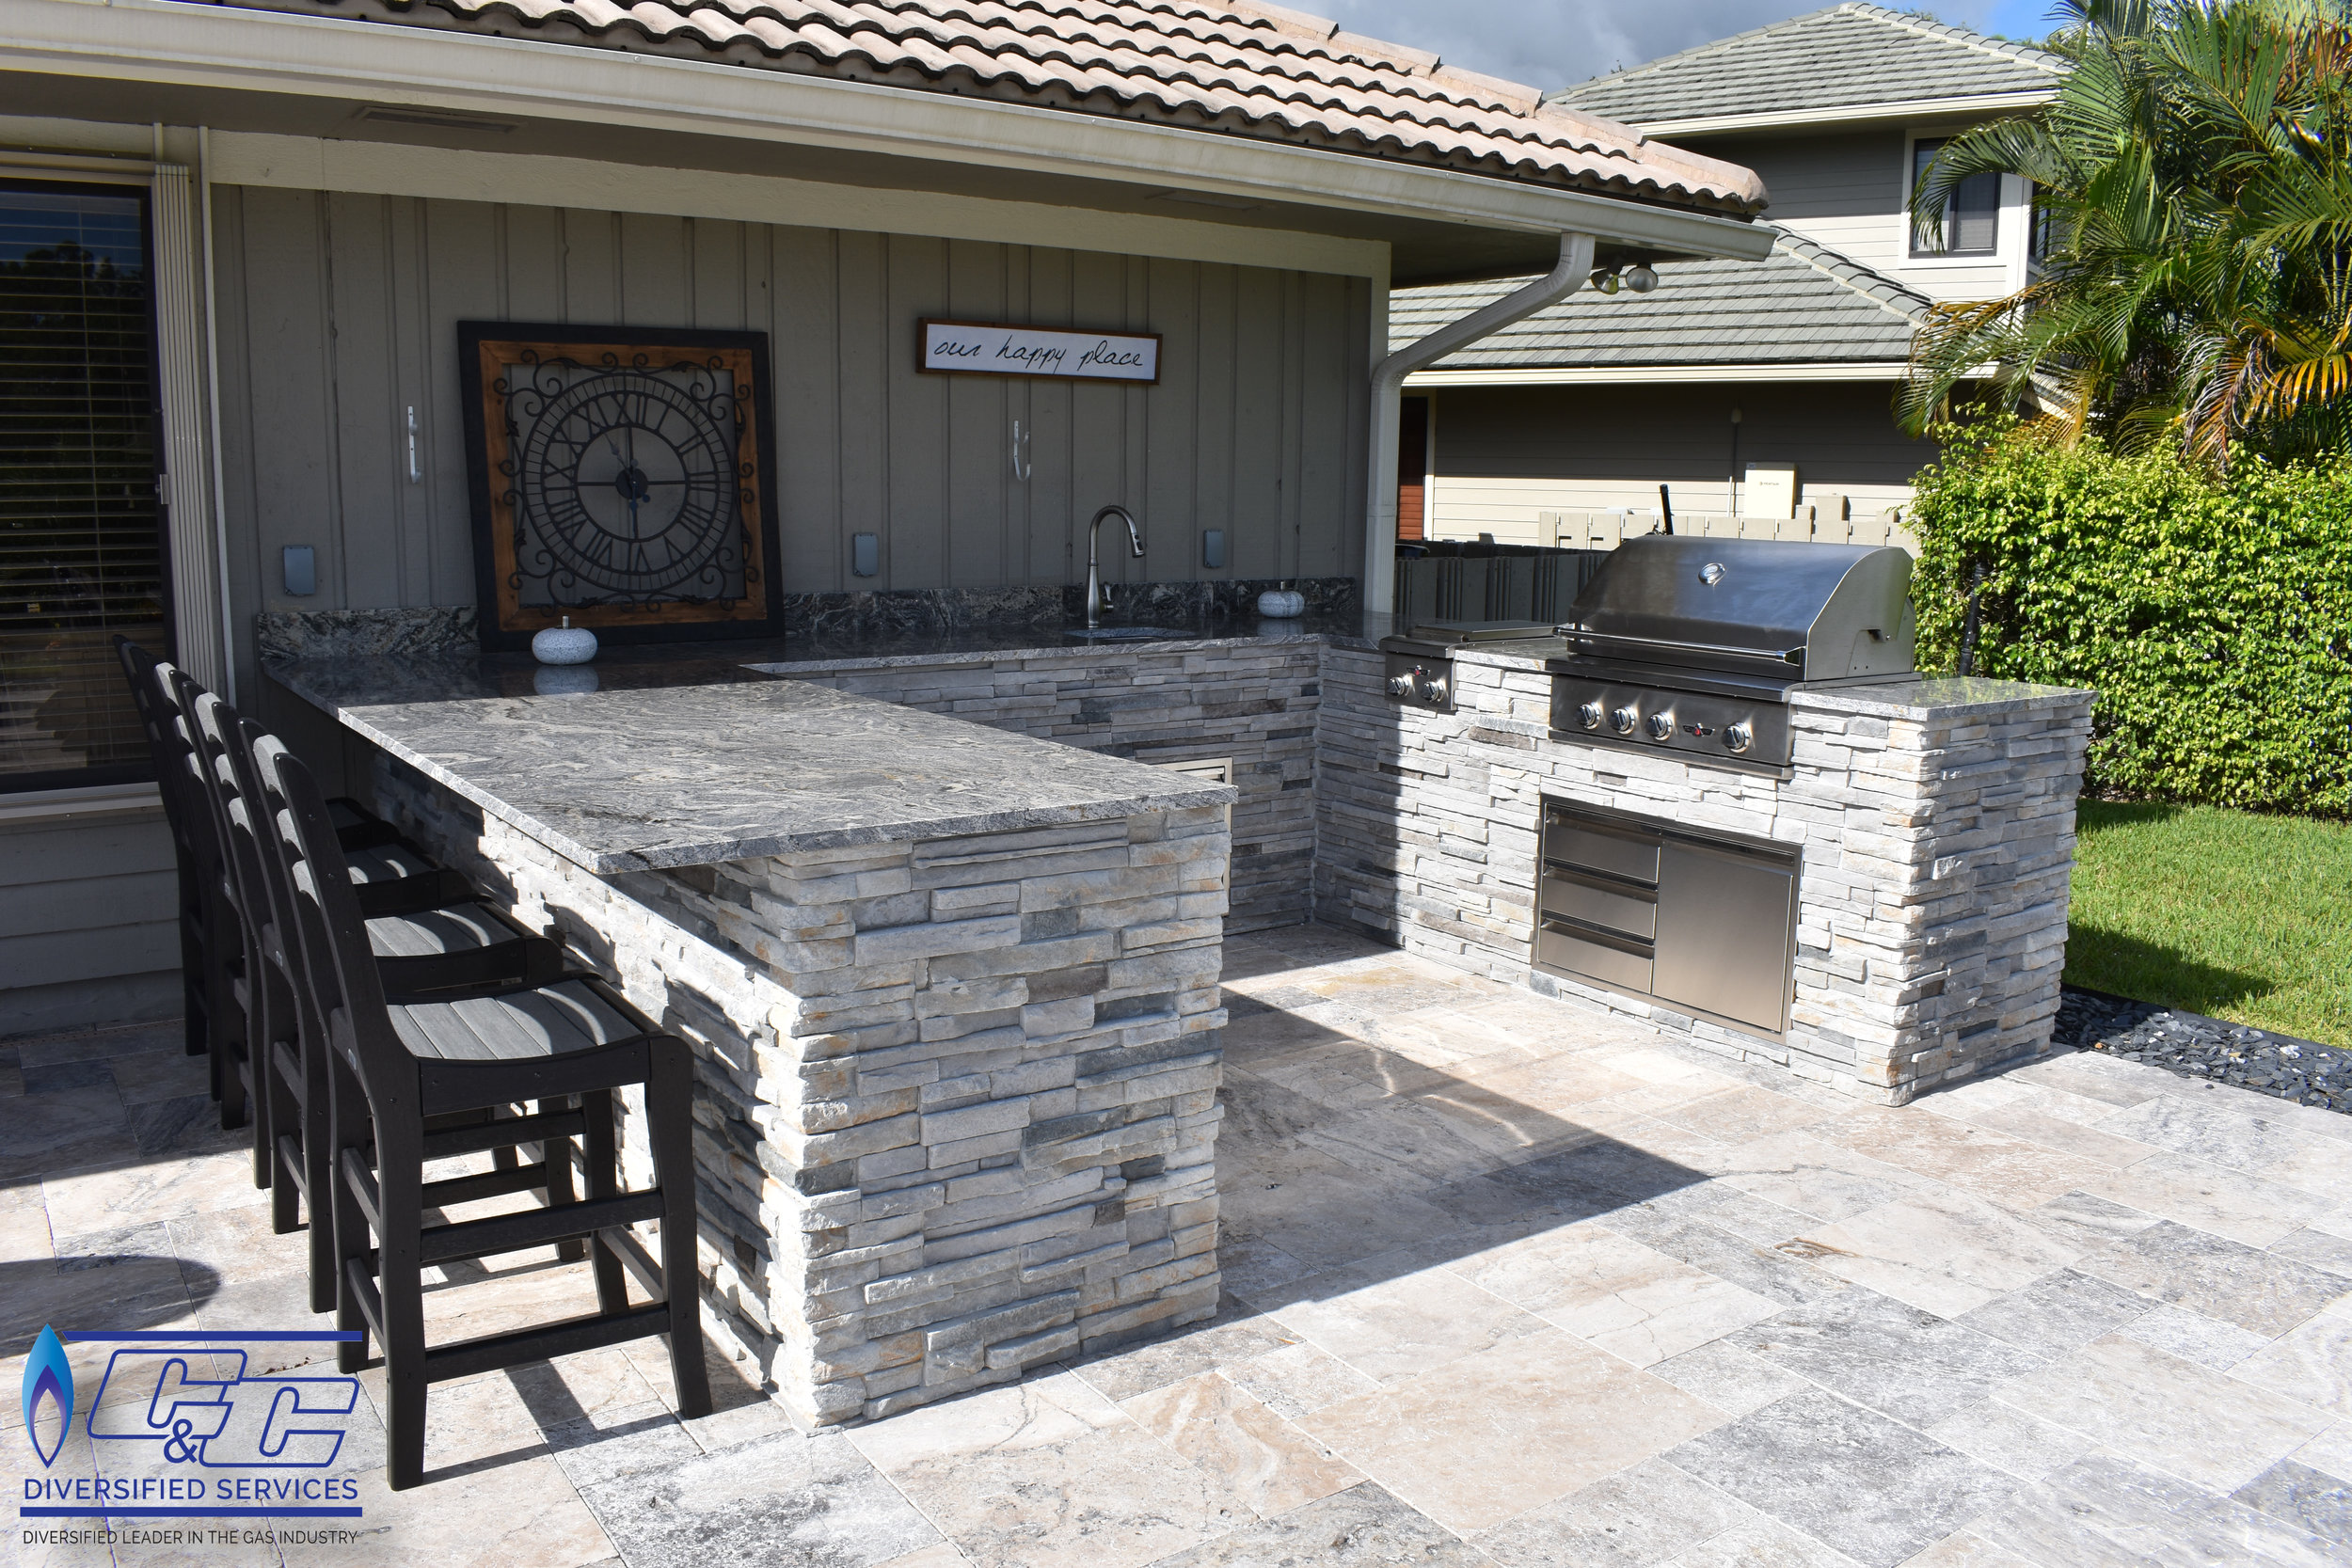 outdoor kitchen frame distressed chairs kitchens jupiter stuart and surrounding areas c custom photos welded aluminum l shaped with hardy board stacked stone finish